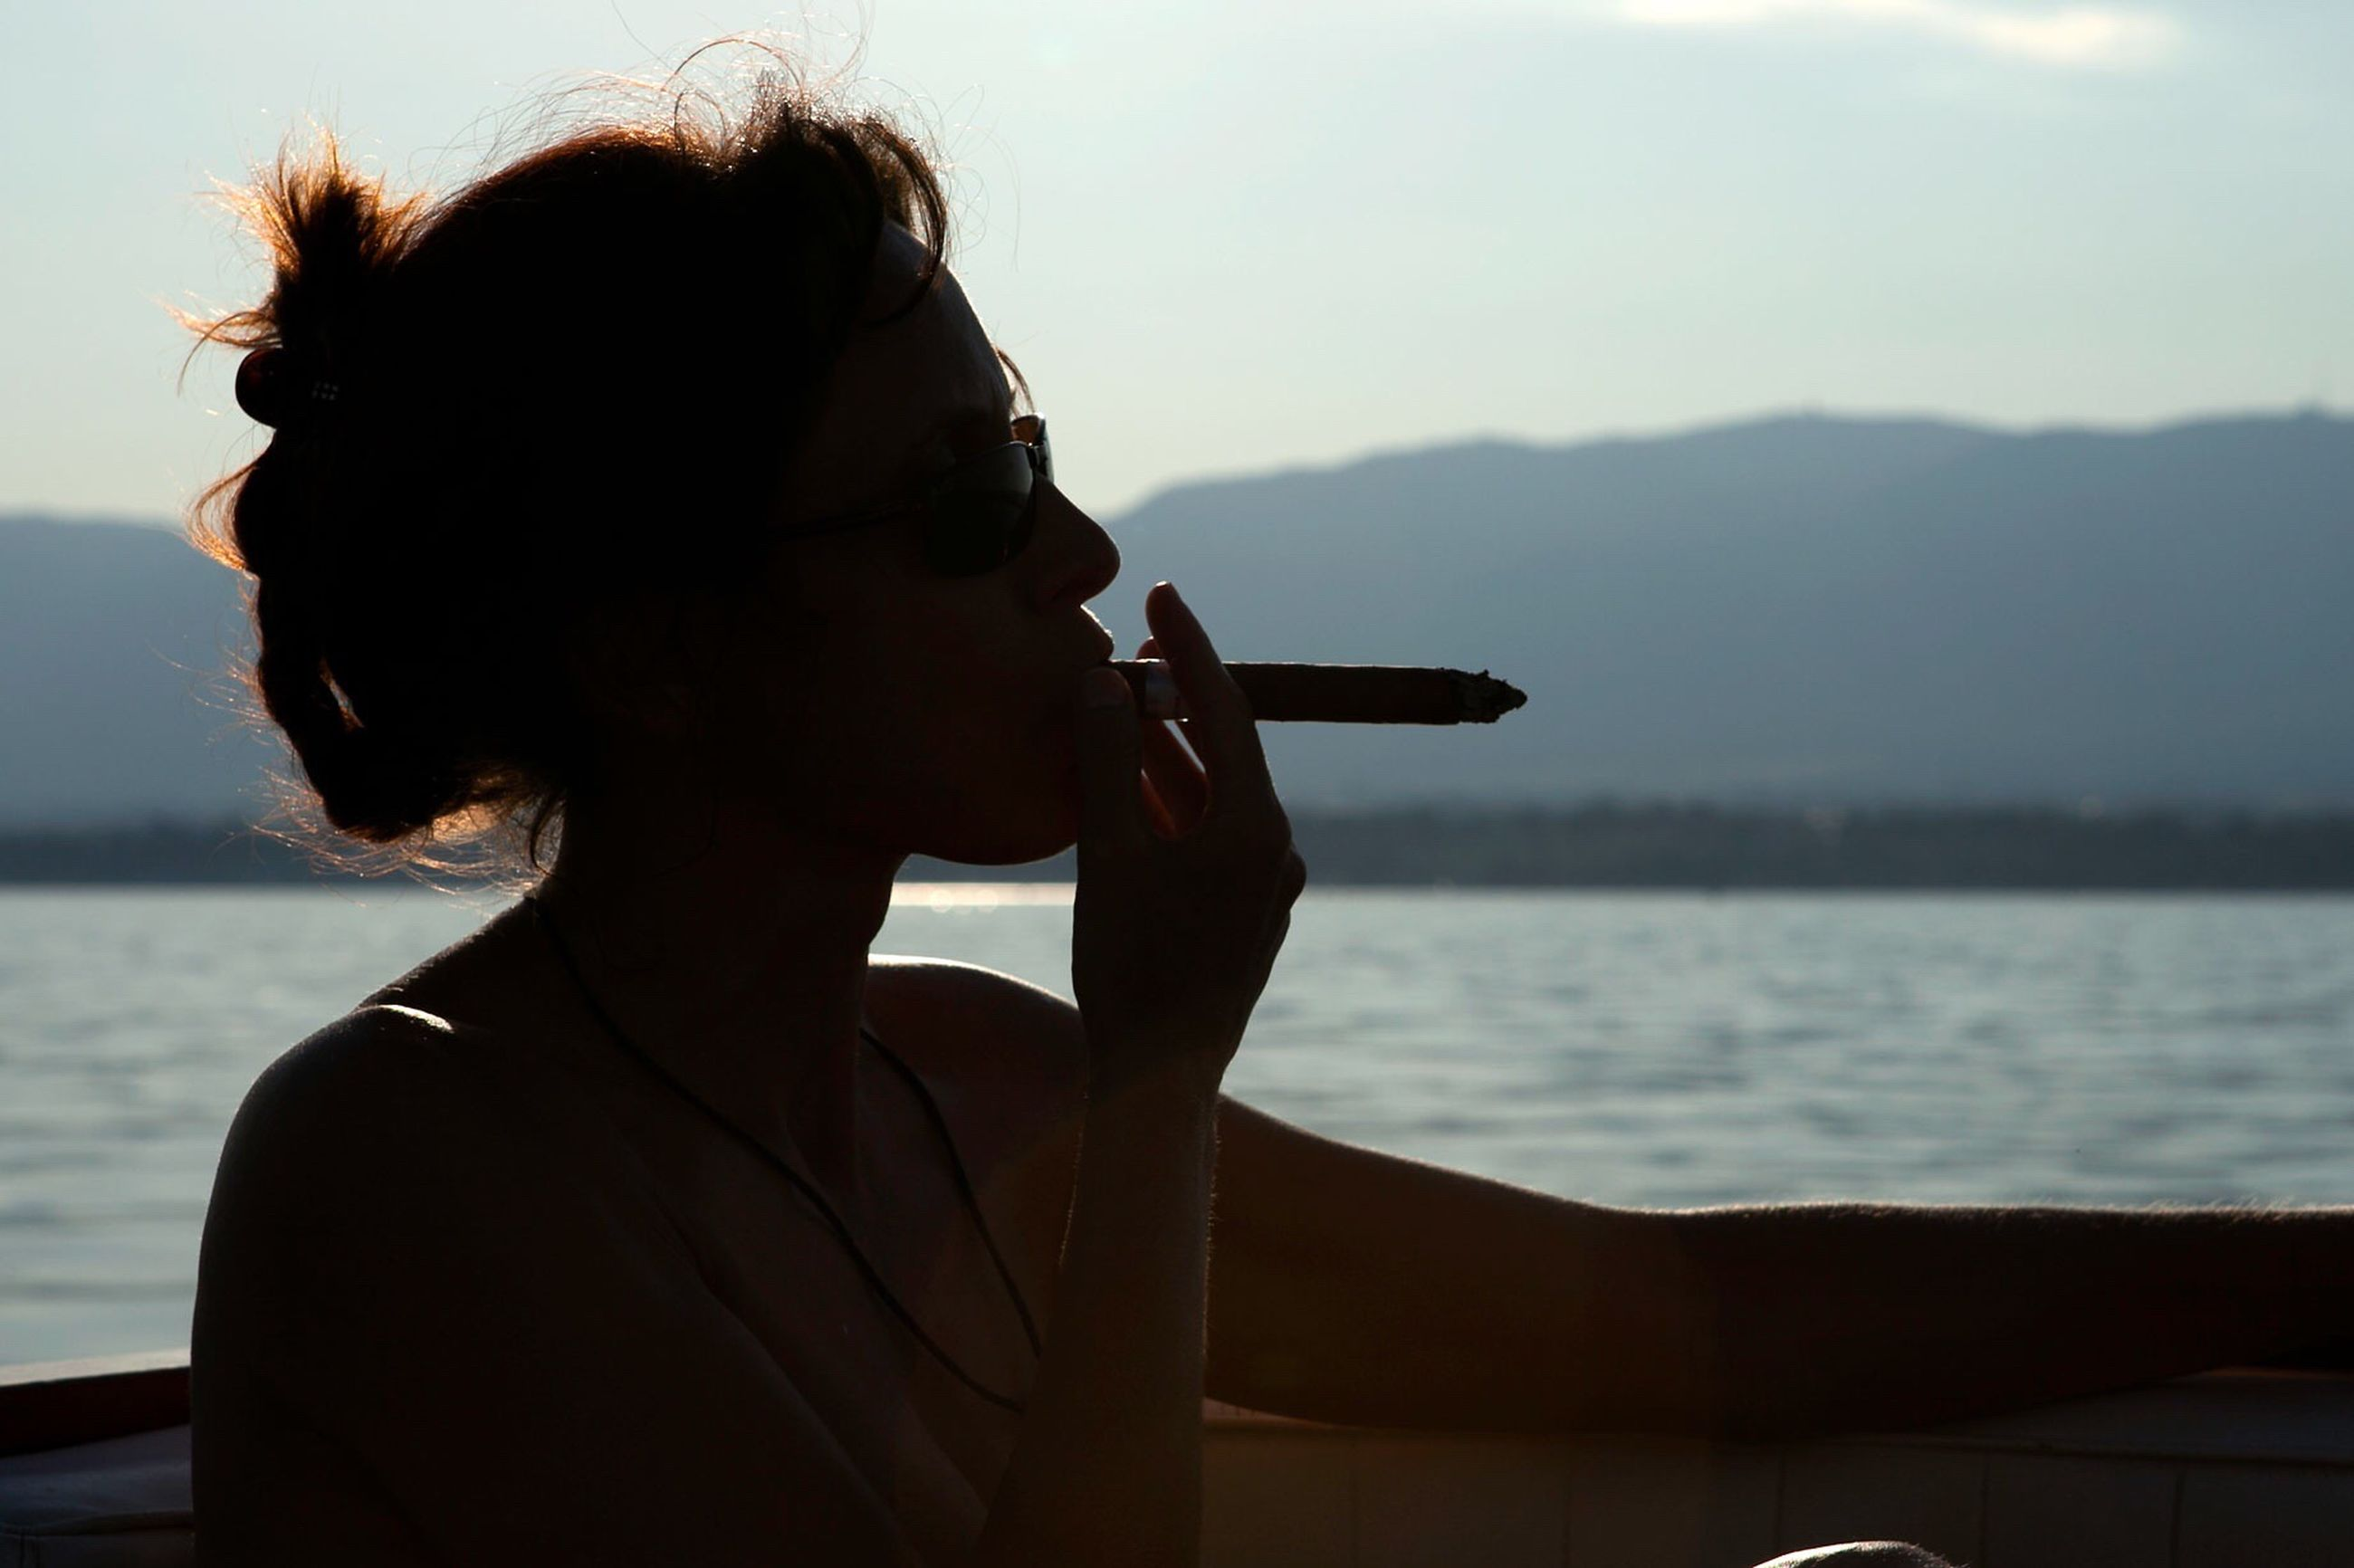 lifestyles, leisure activity, water, sea, focus on foreground, rear view, sky, waist up, headshot, silhouette, sunset, person, three quarter length, photography themes, side view, photographing, nature, holding